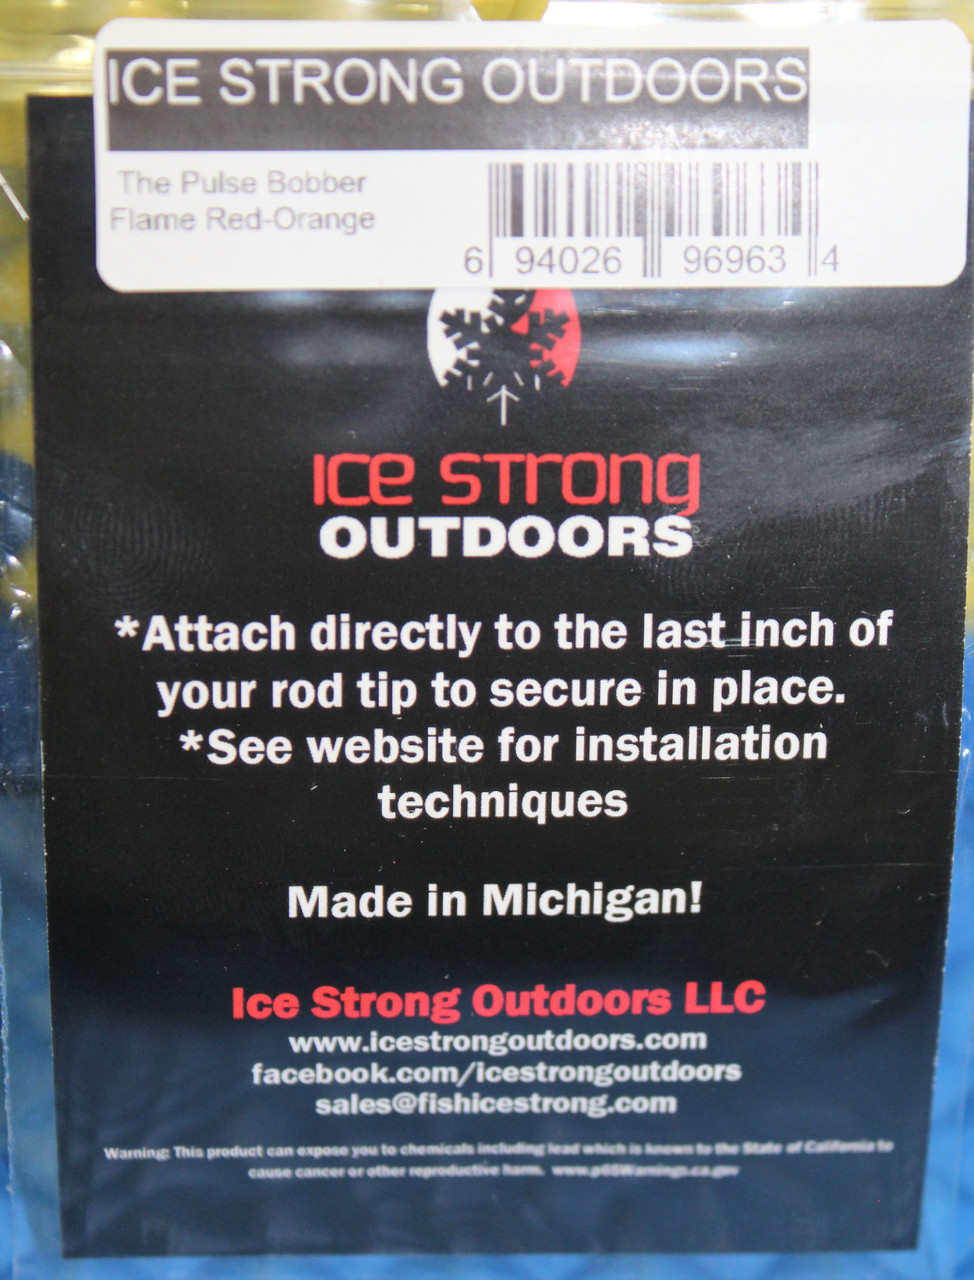 Ice Strong Titanium Spring The Pulse Bobber With Bead For 2.0-3.0mm Tungsten Jigs & Ice Flies Flame Red-Orange